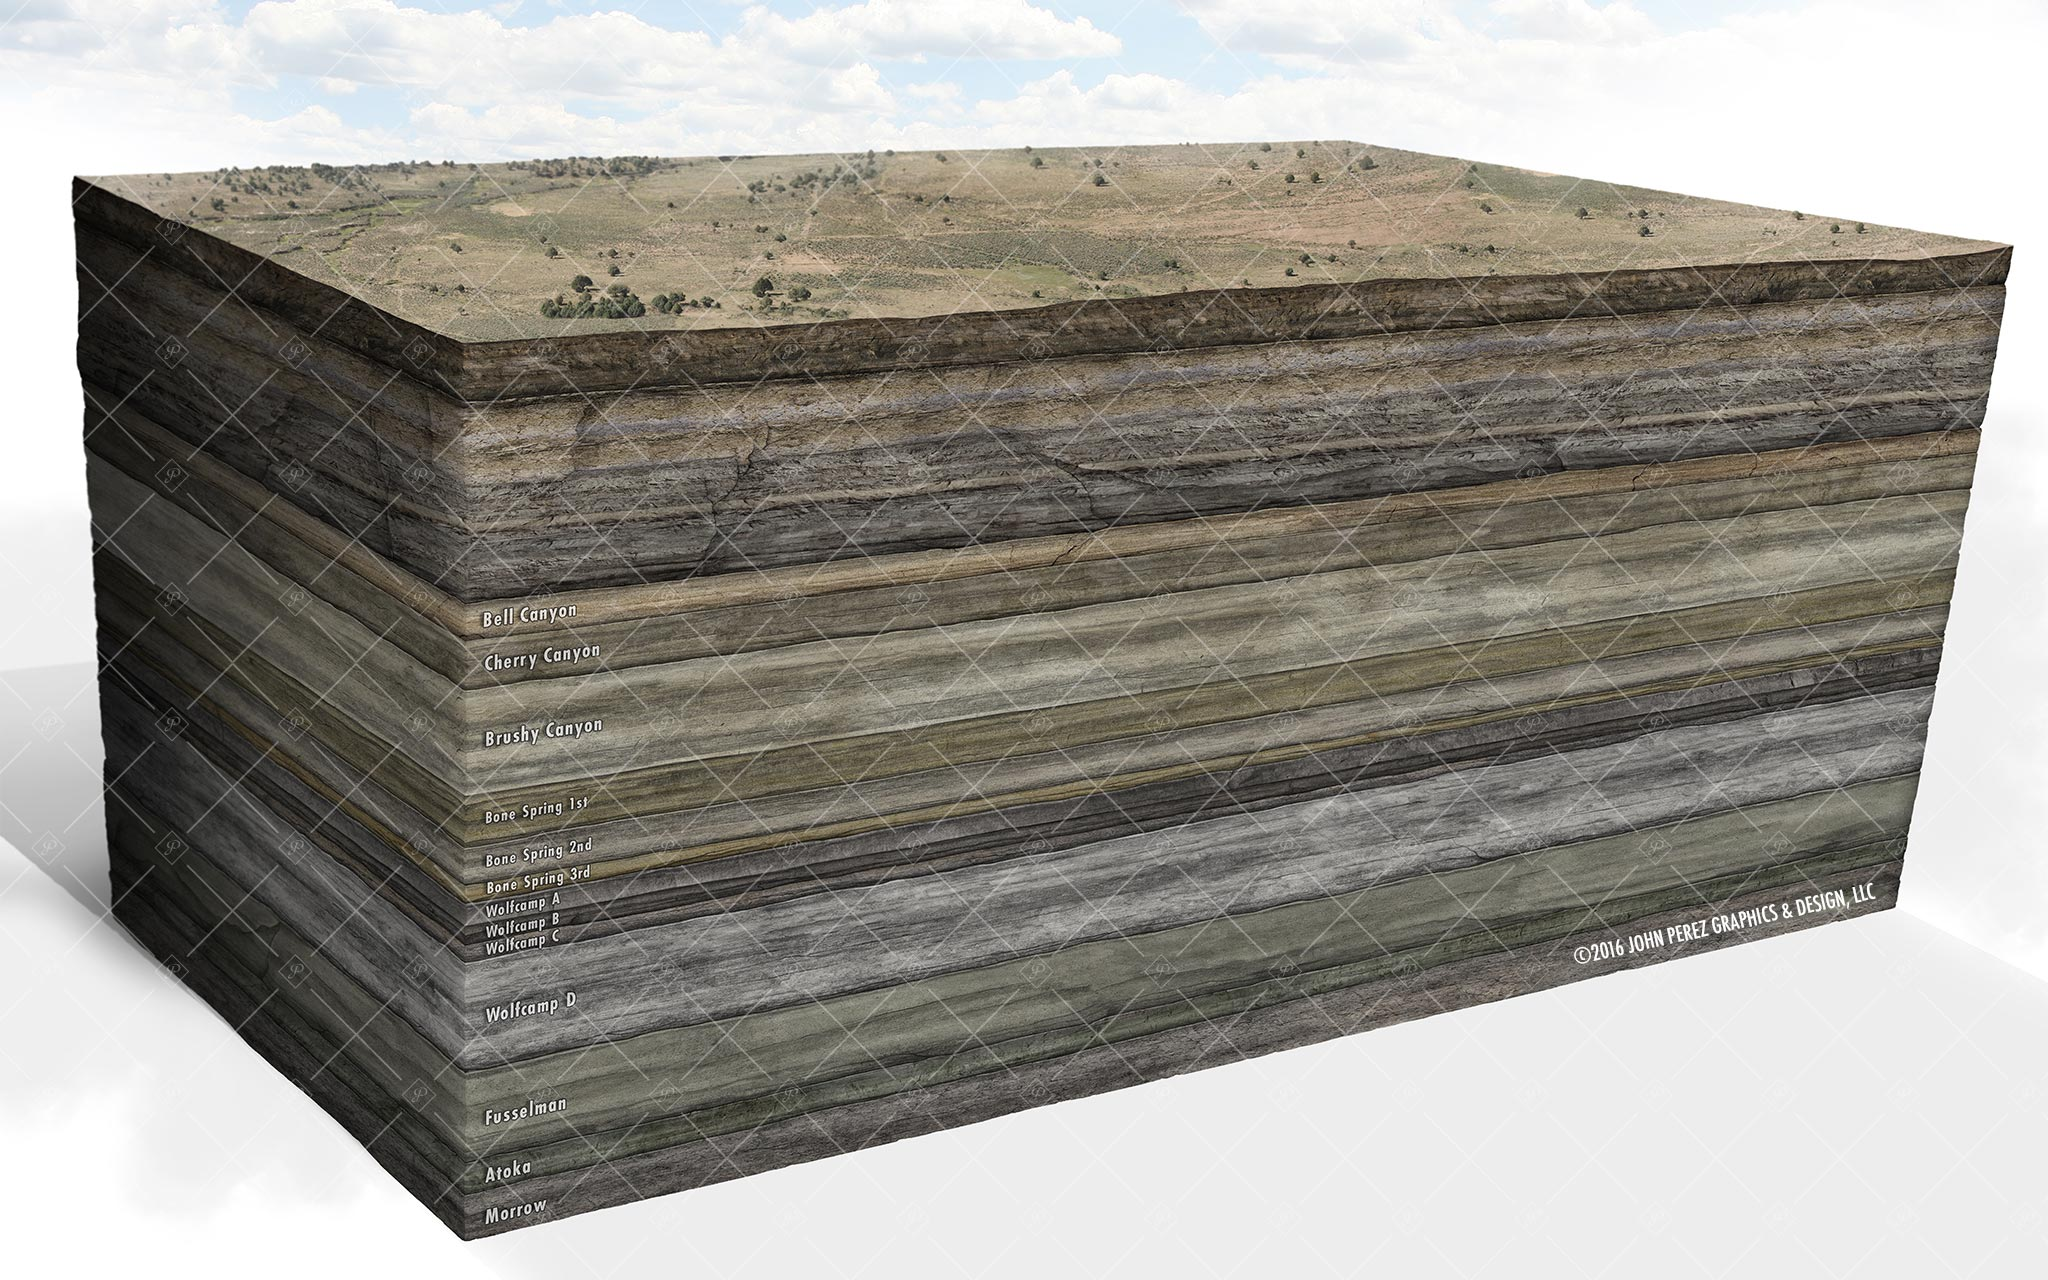 Permian Basin Drilling Lithology, oil and gas graphics, oil and gas schematics